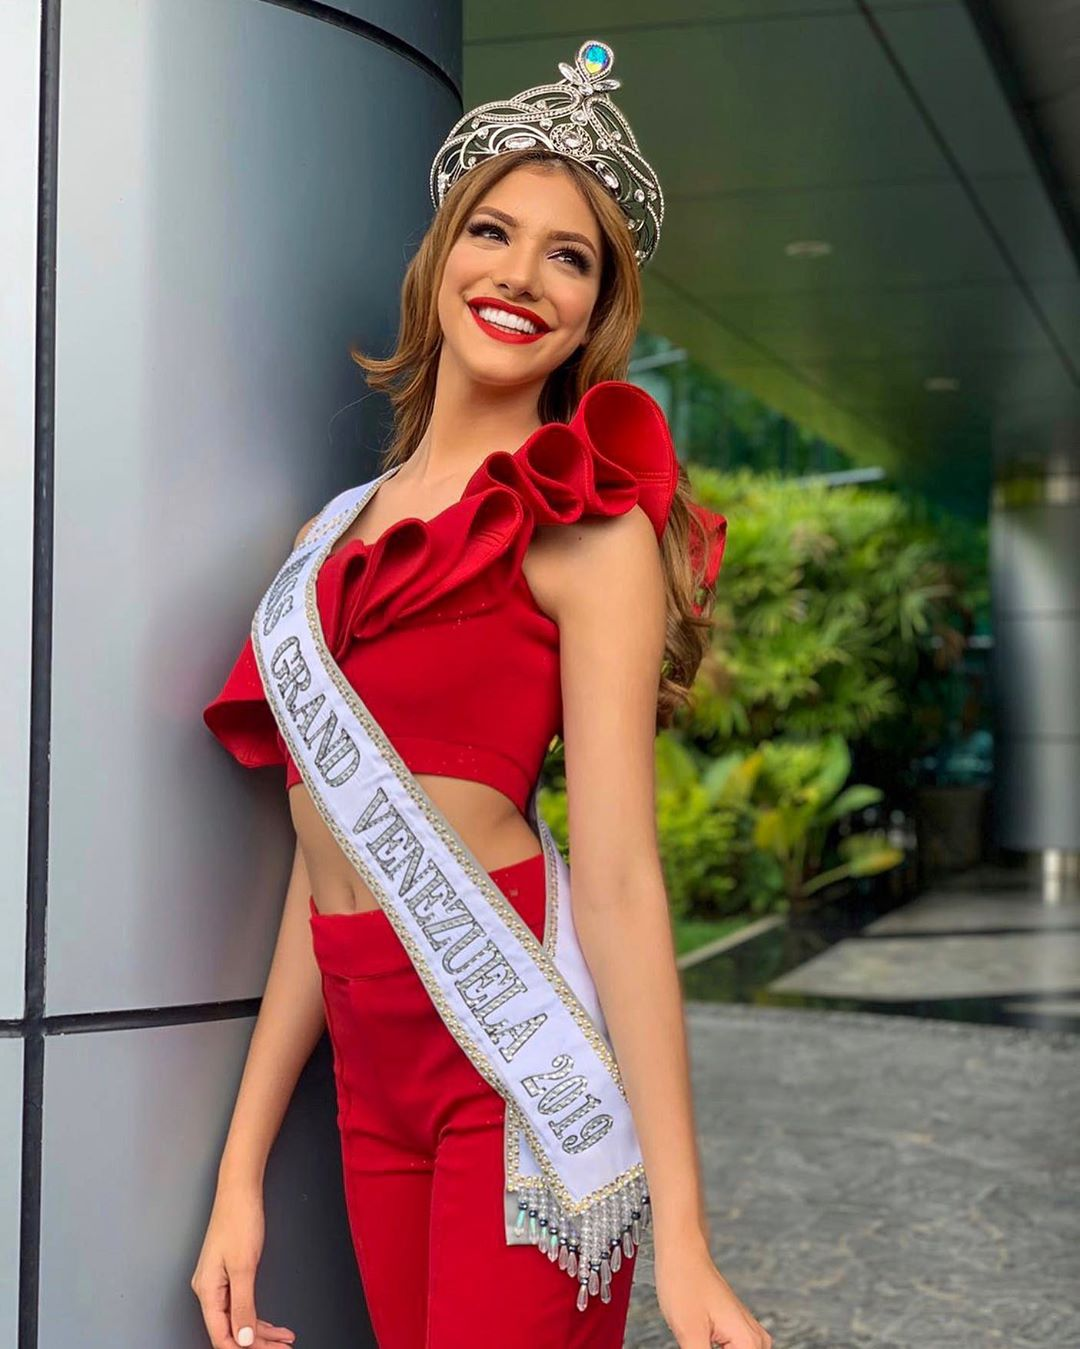 lourdes valentina figuera, miss grand international 2019. 70862910